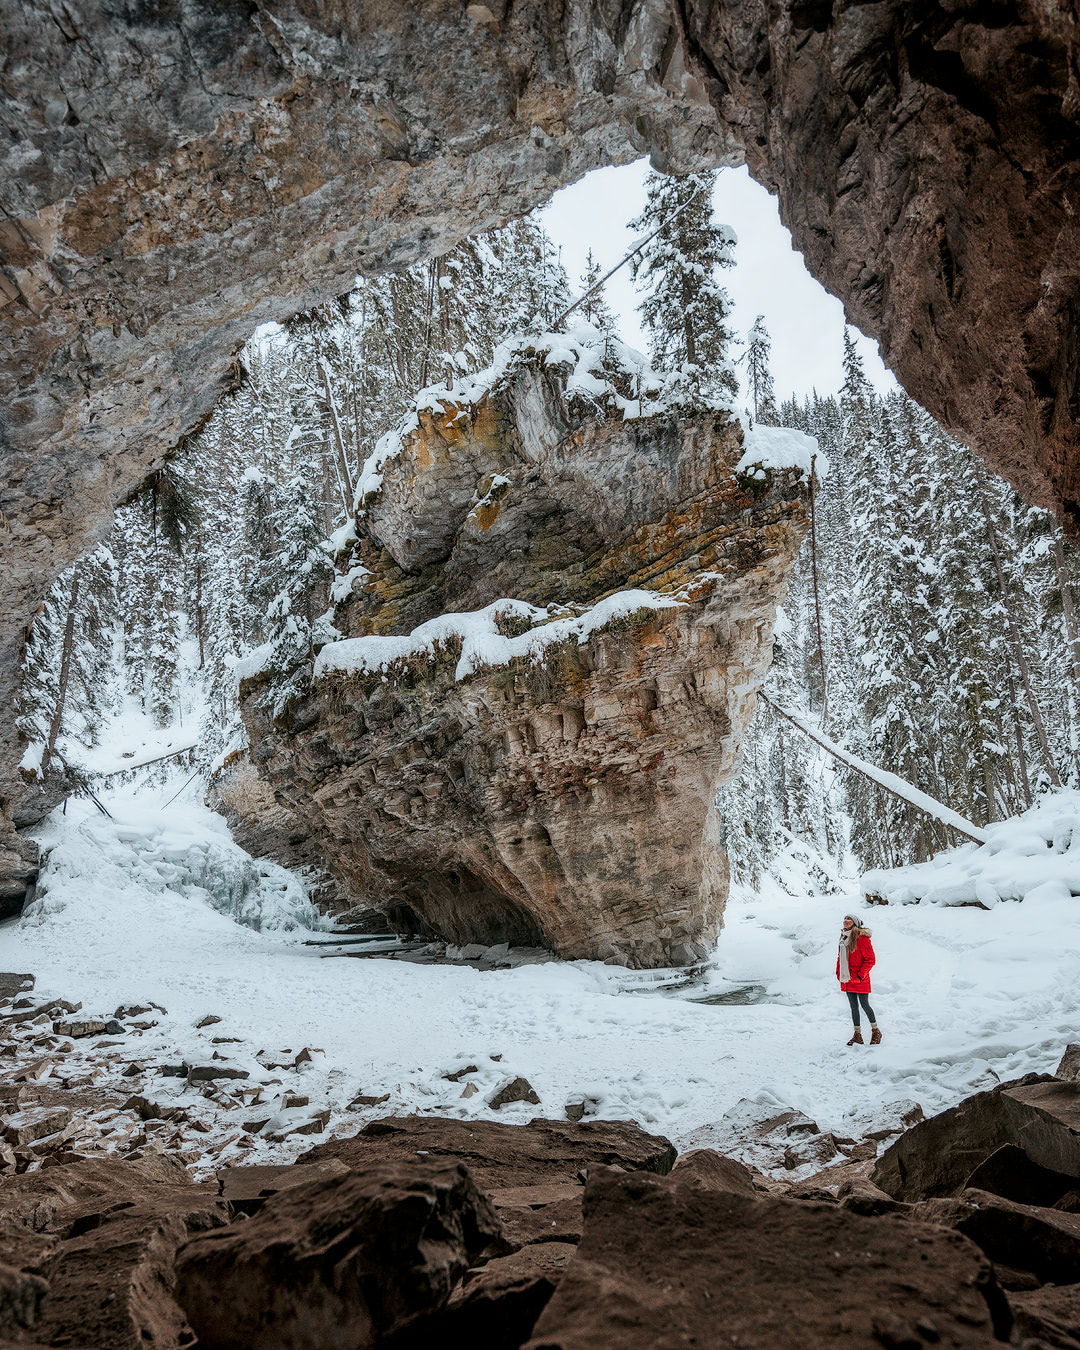 ULTIMATE WINTER TRAVEL GUIDE TO ALBERTA CANADA – 7 DAY ITINERARY - Renee Roaming